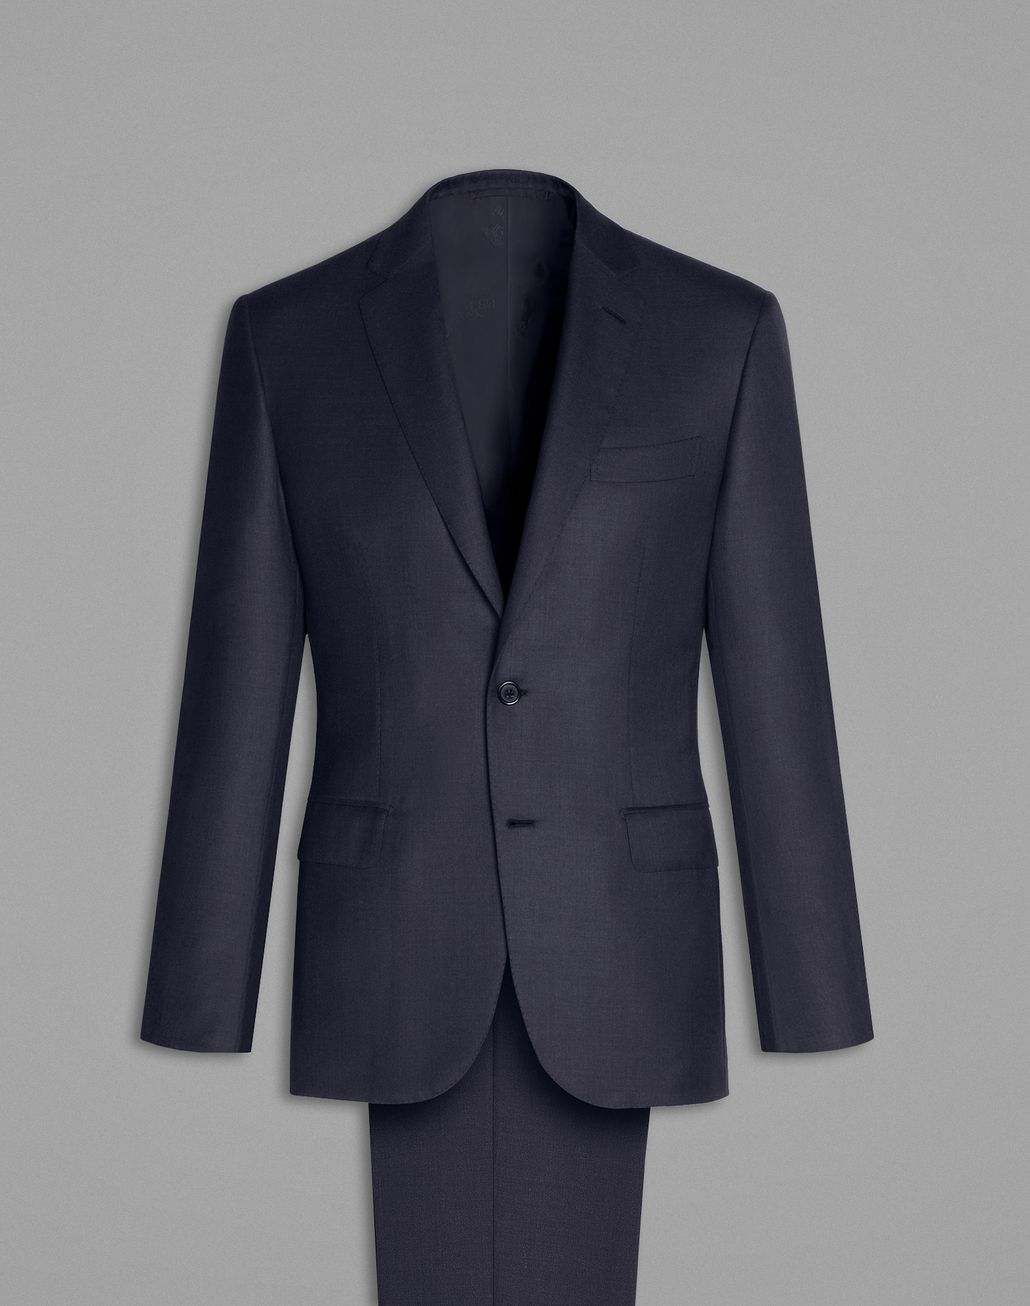 BRIONI Navy Blue Madison Suit Suits & Jackets Man f